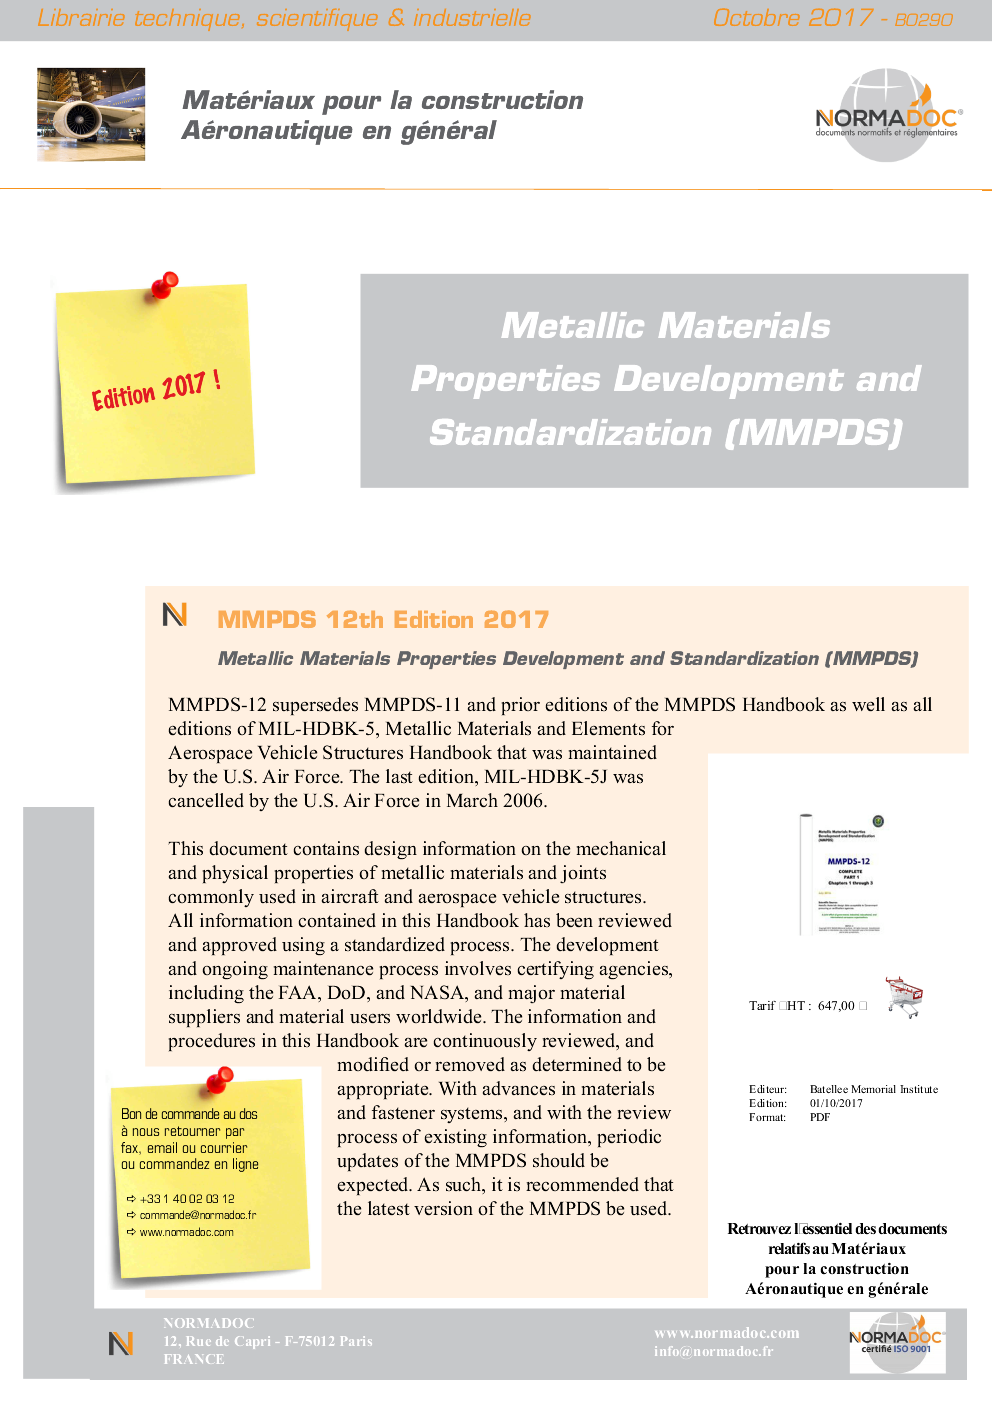 Metallic materials properties development and standardization (MMPDS)